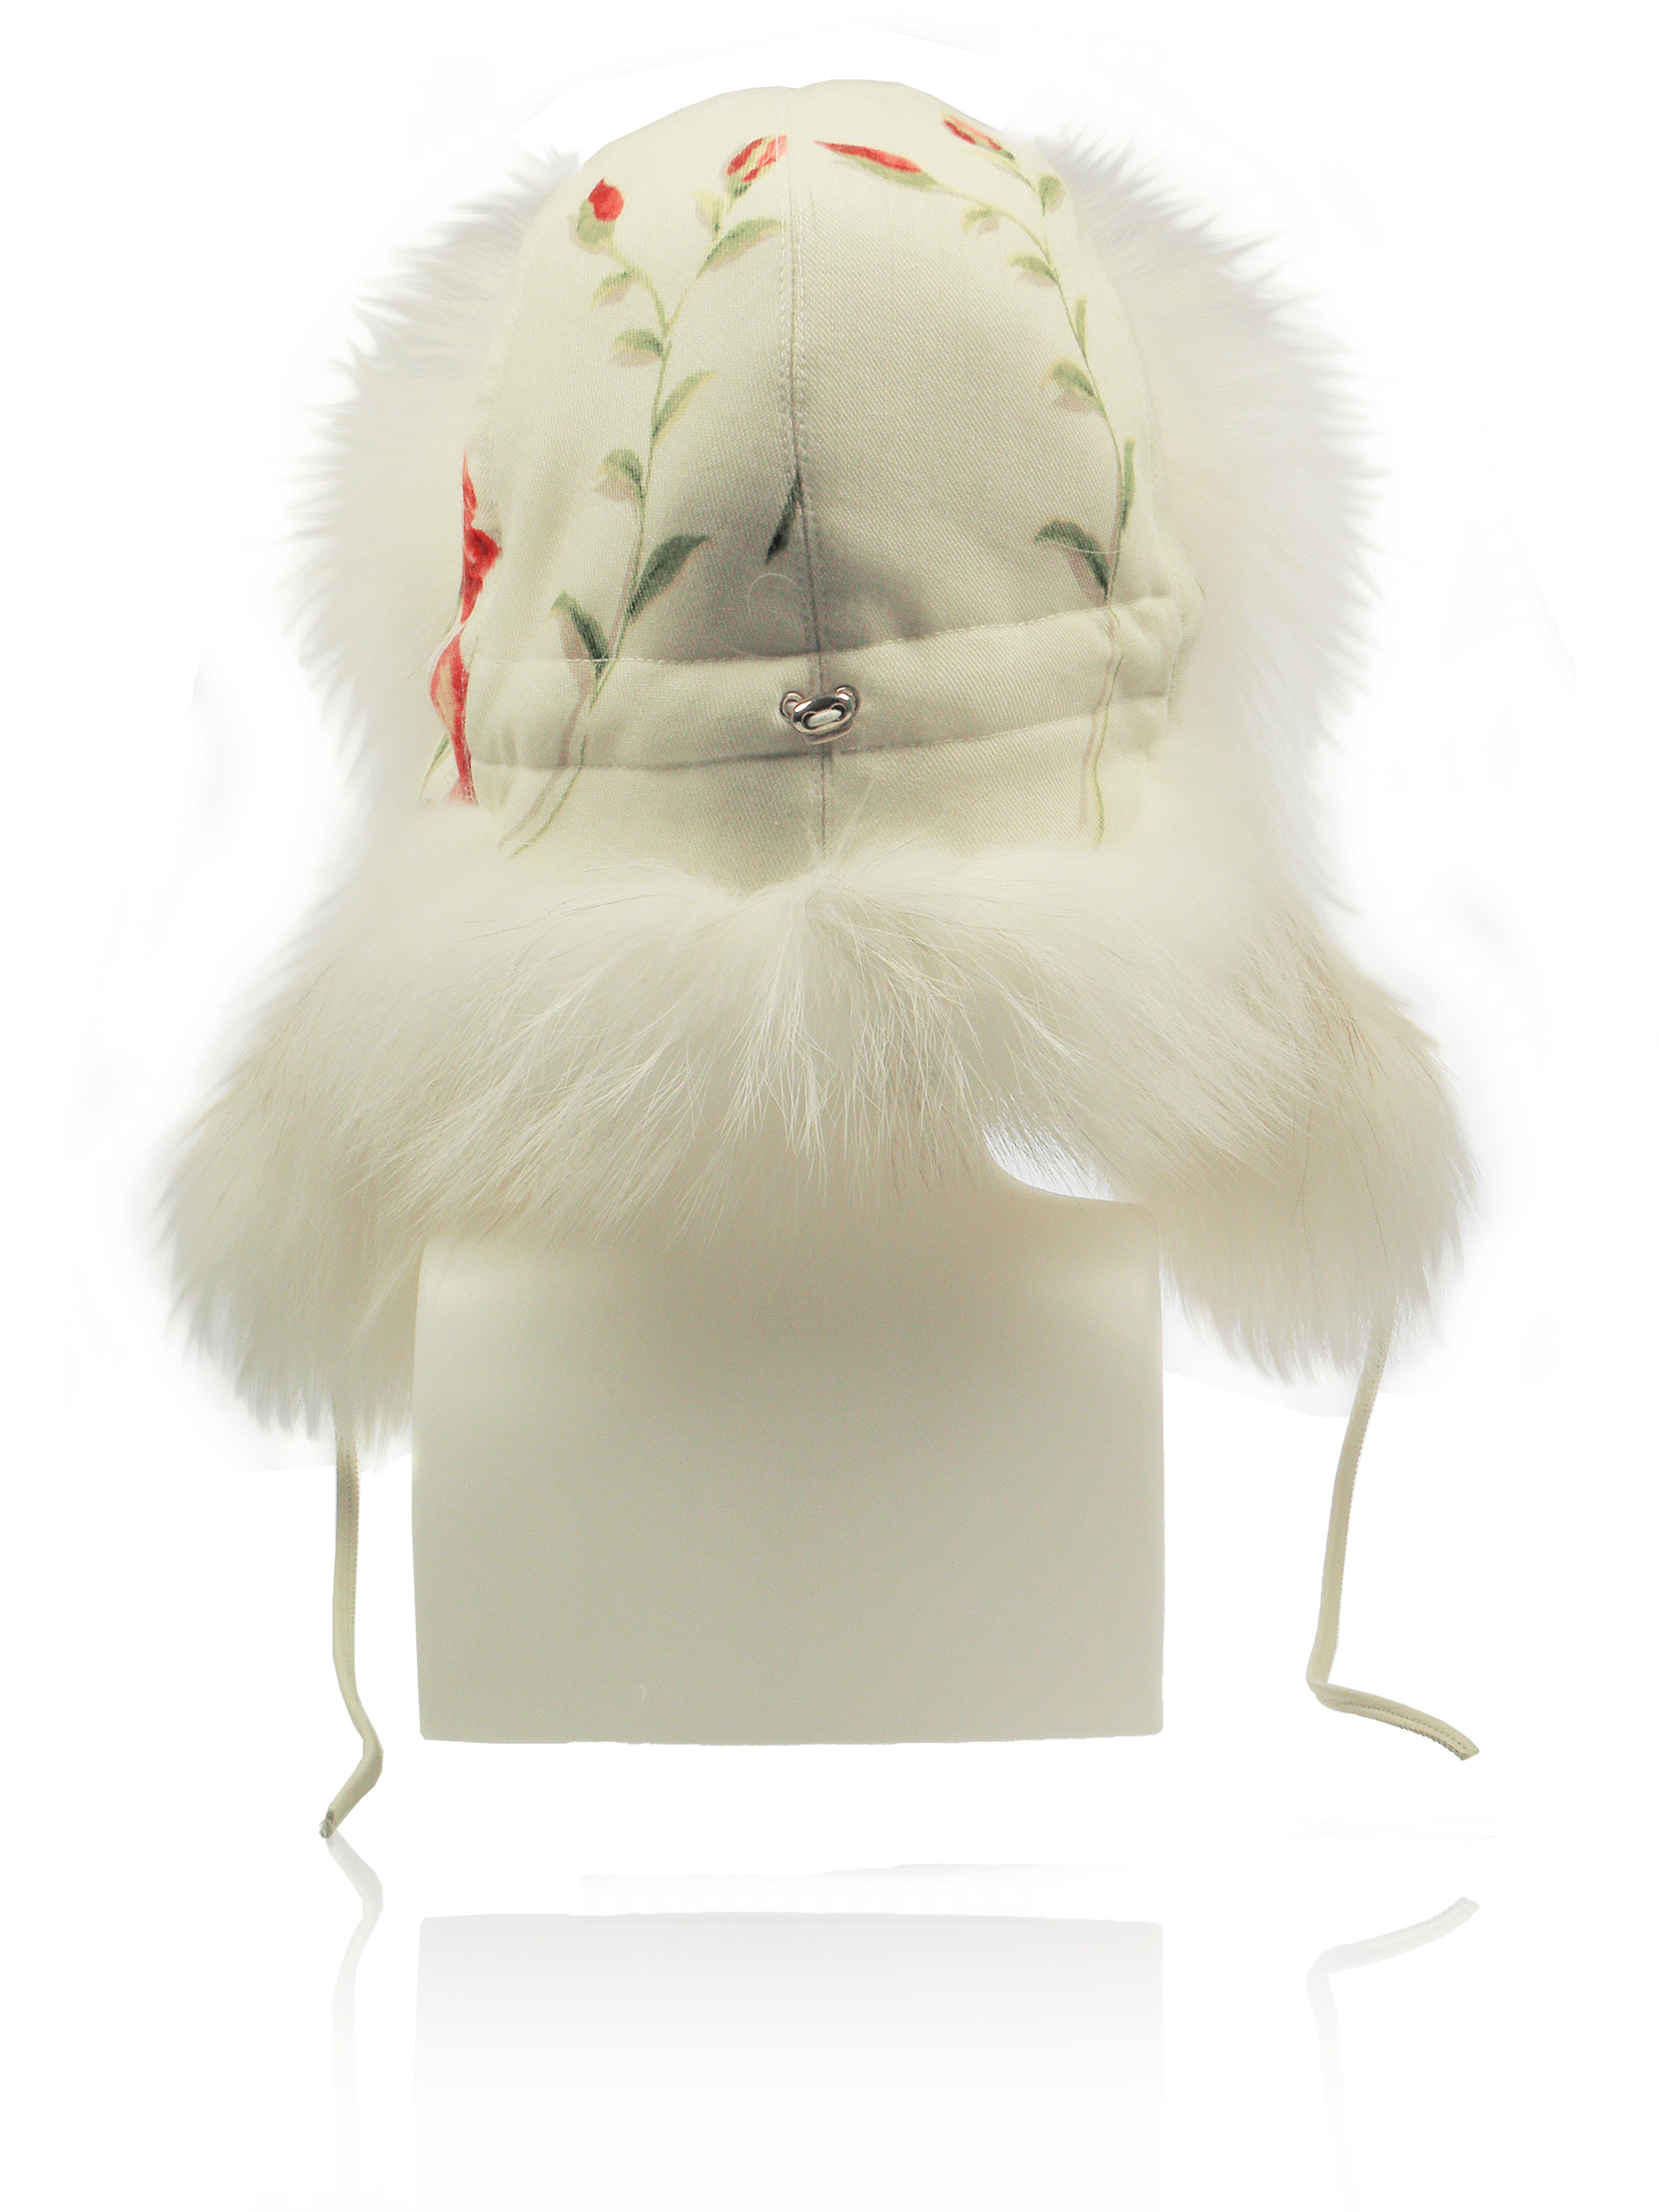 FurLand Aviator Cap - USHANKA WHITE RED ROSES - Fox Fur